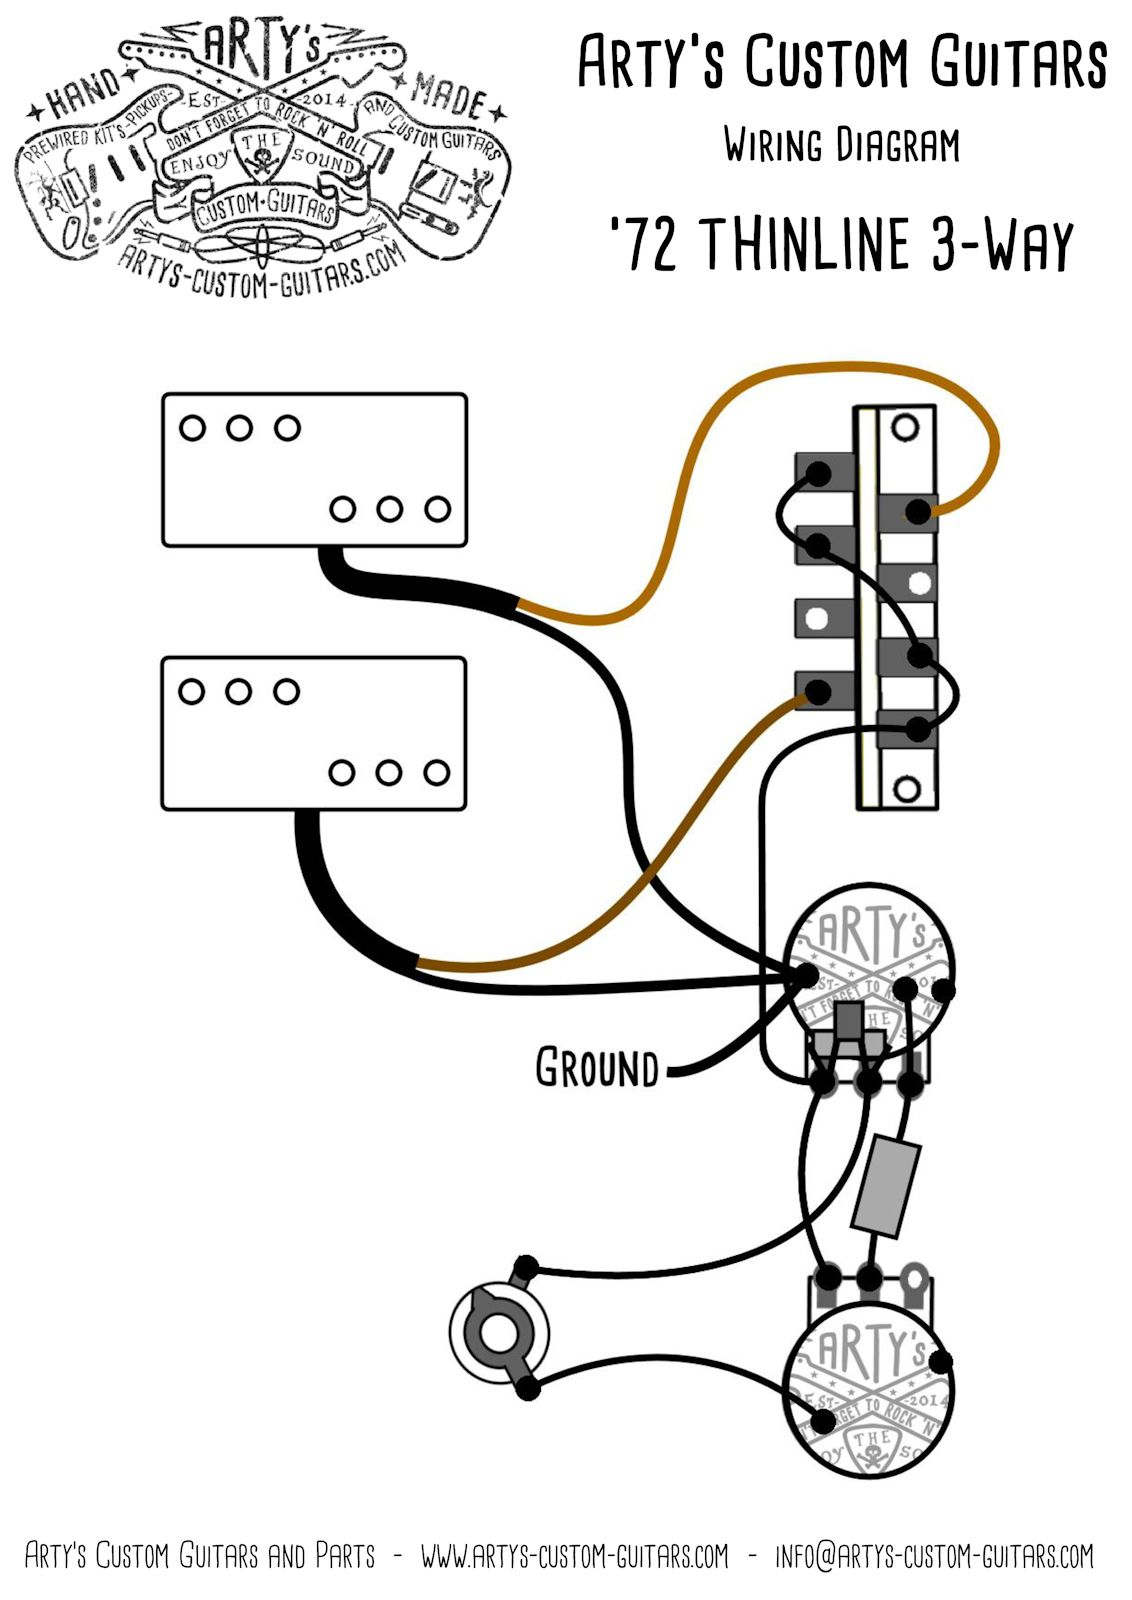 Th Te 3 Way Thinline 72 Vintage Prewired Kit Wiring Harness Tele Artys Custom Guitars Telecaster Standard Pre Wired Control Plate